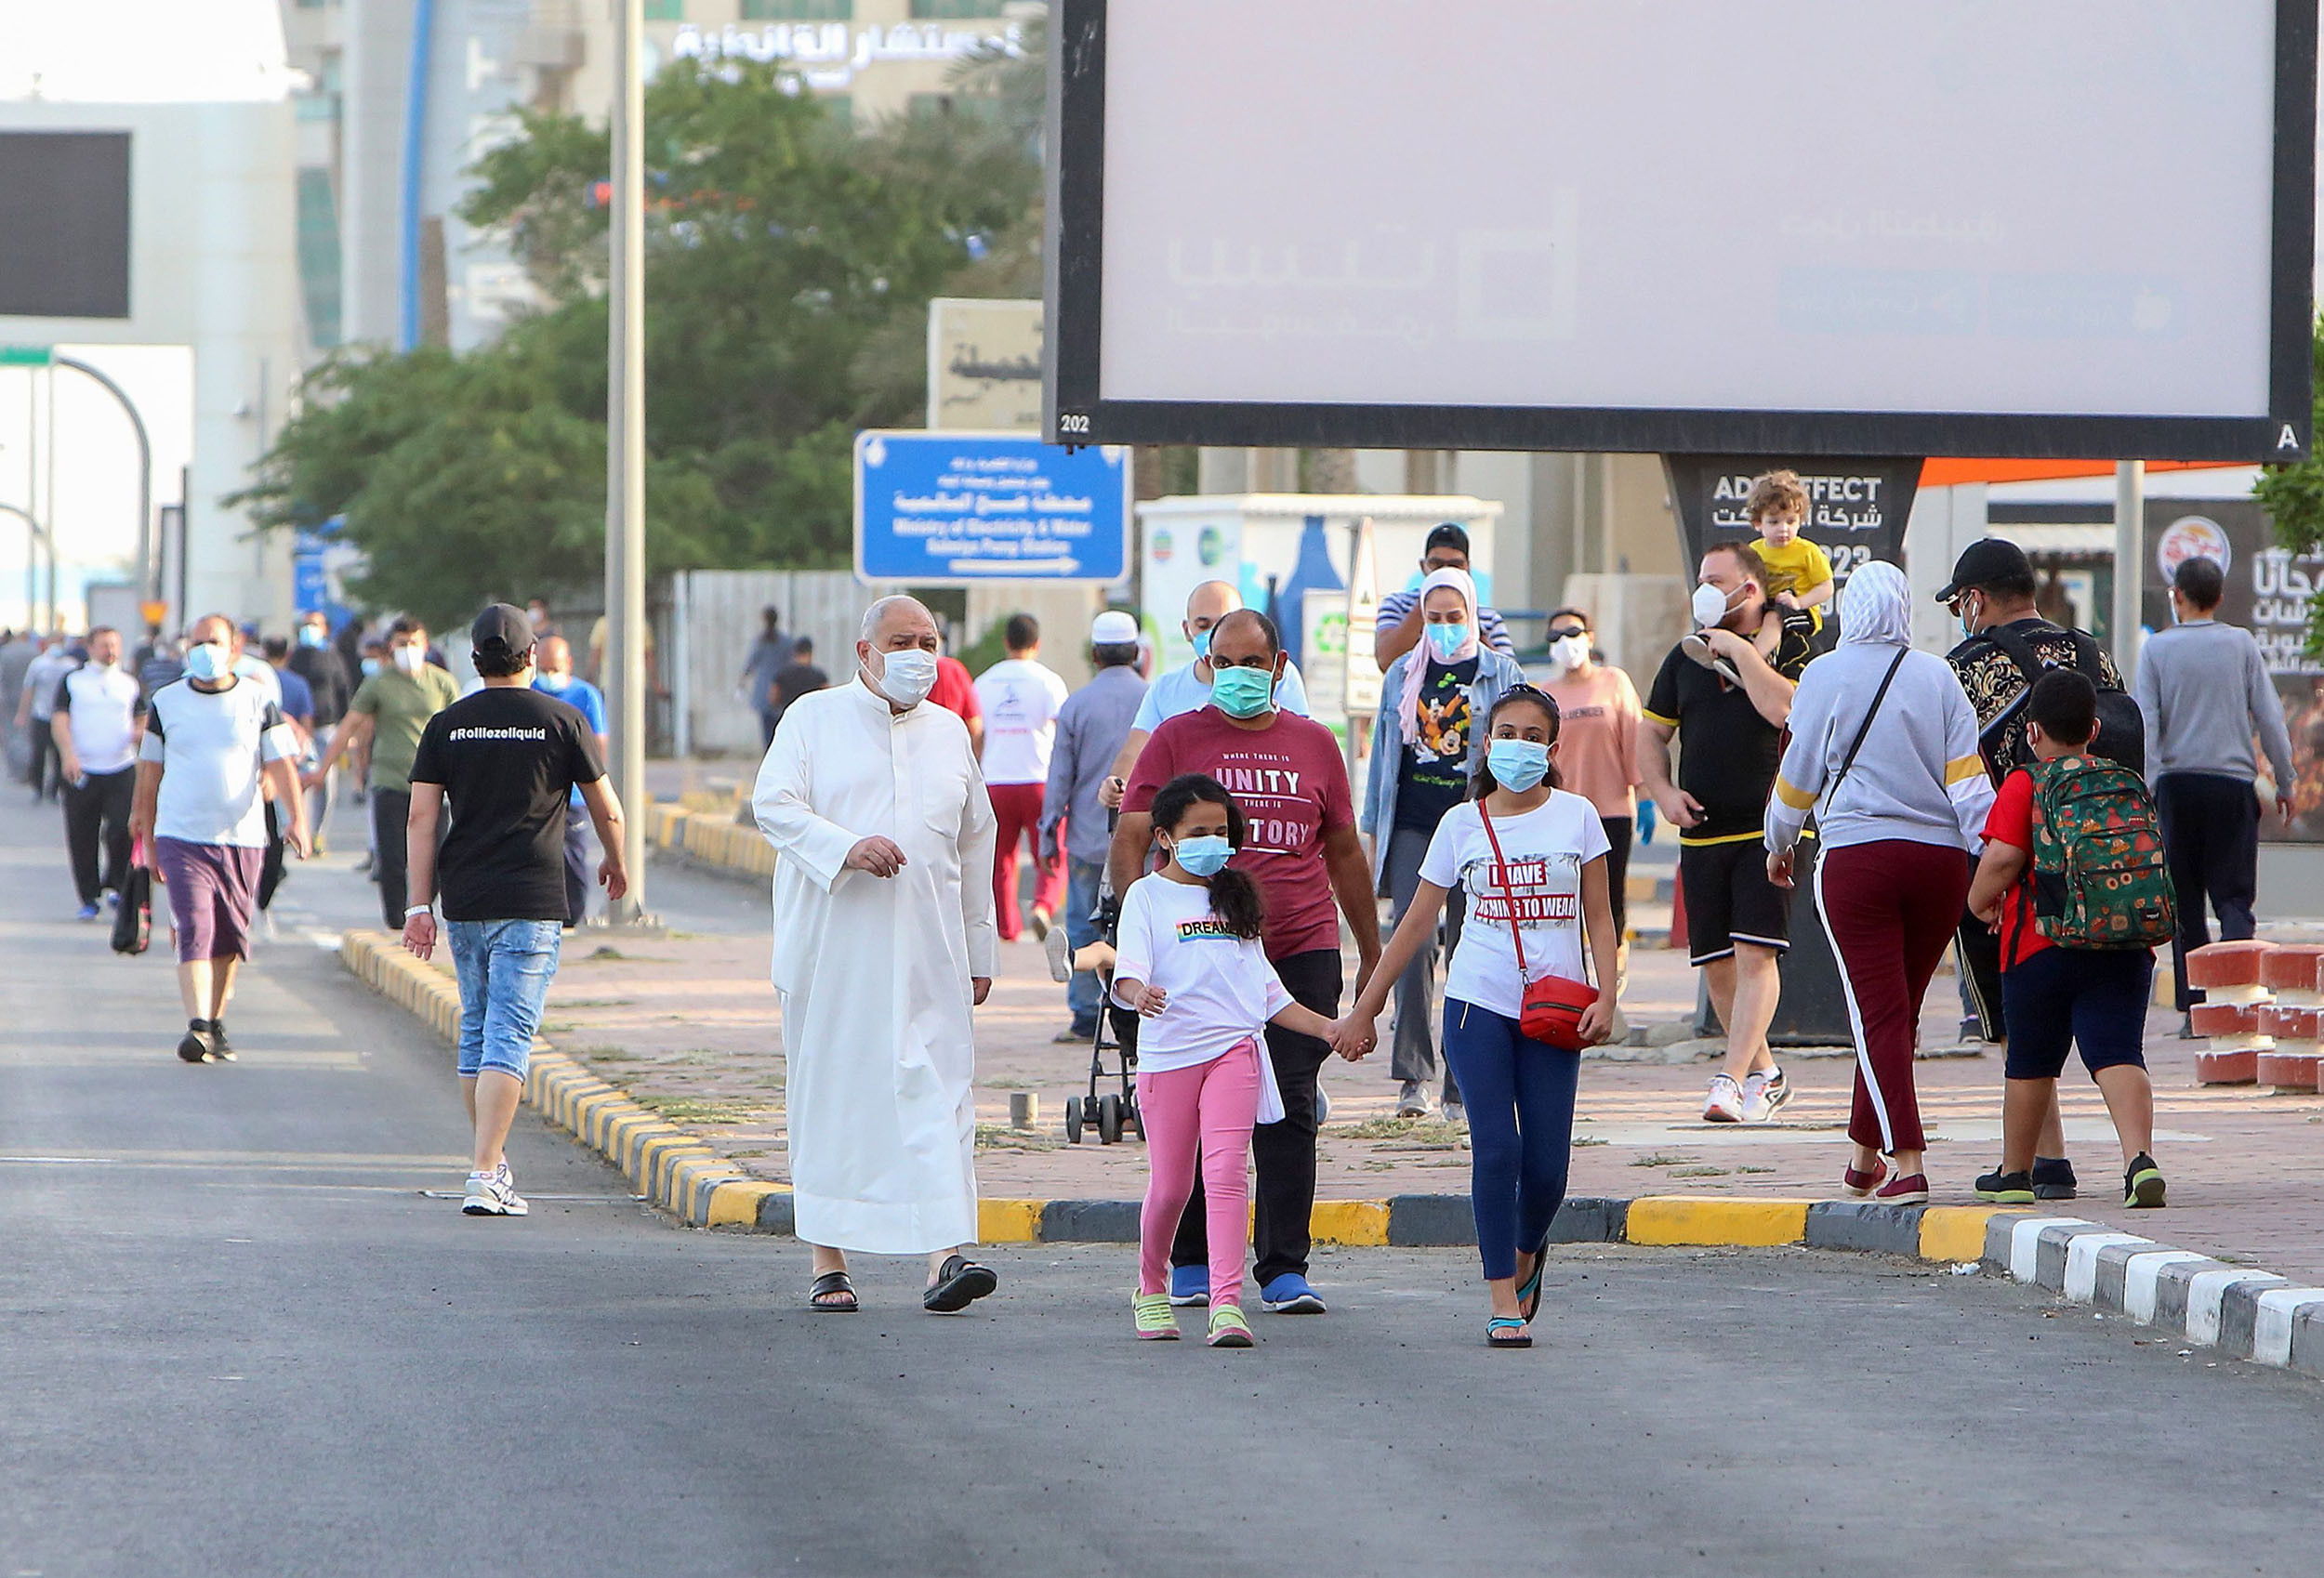 Residents walk in a neighborhood of Kuwait City, on May 12, as authorities allowed people to exercise for two hours under a nationwide lockdown due to the COVID-19 pandemic.